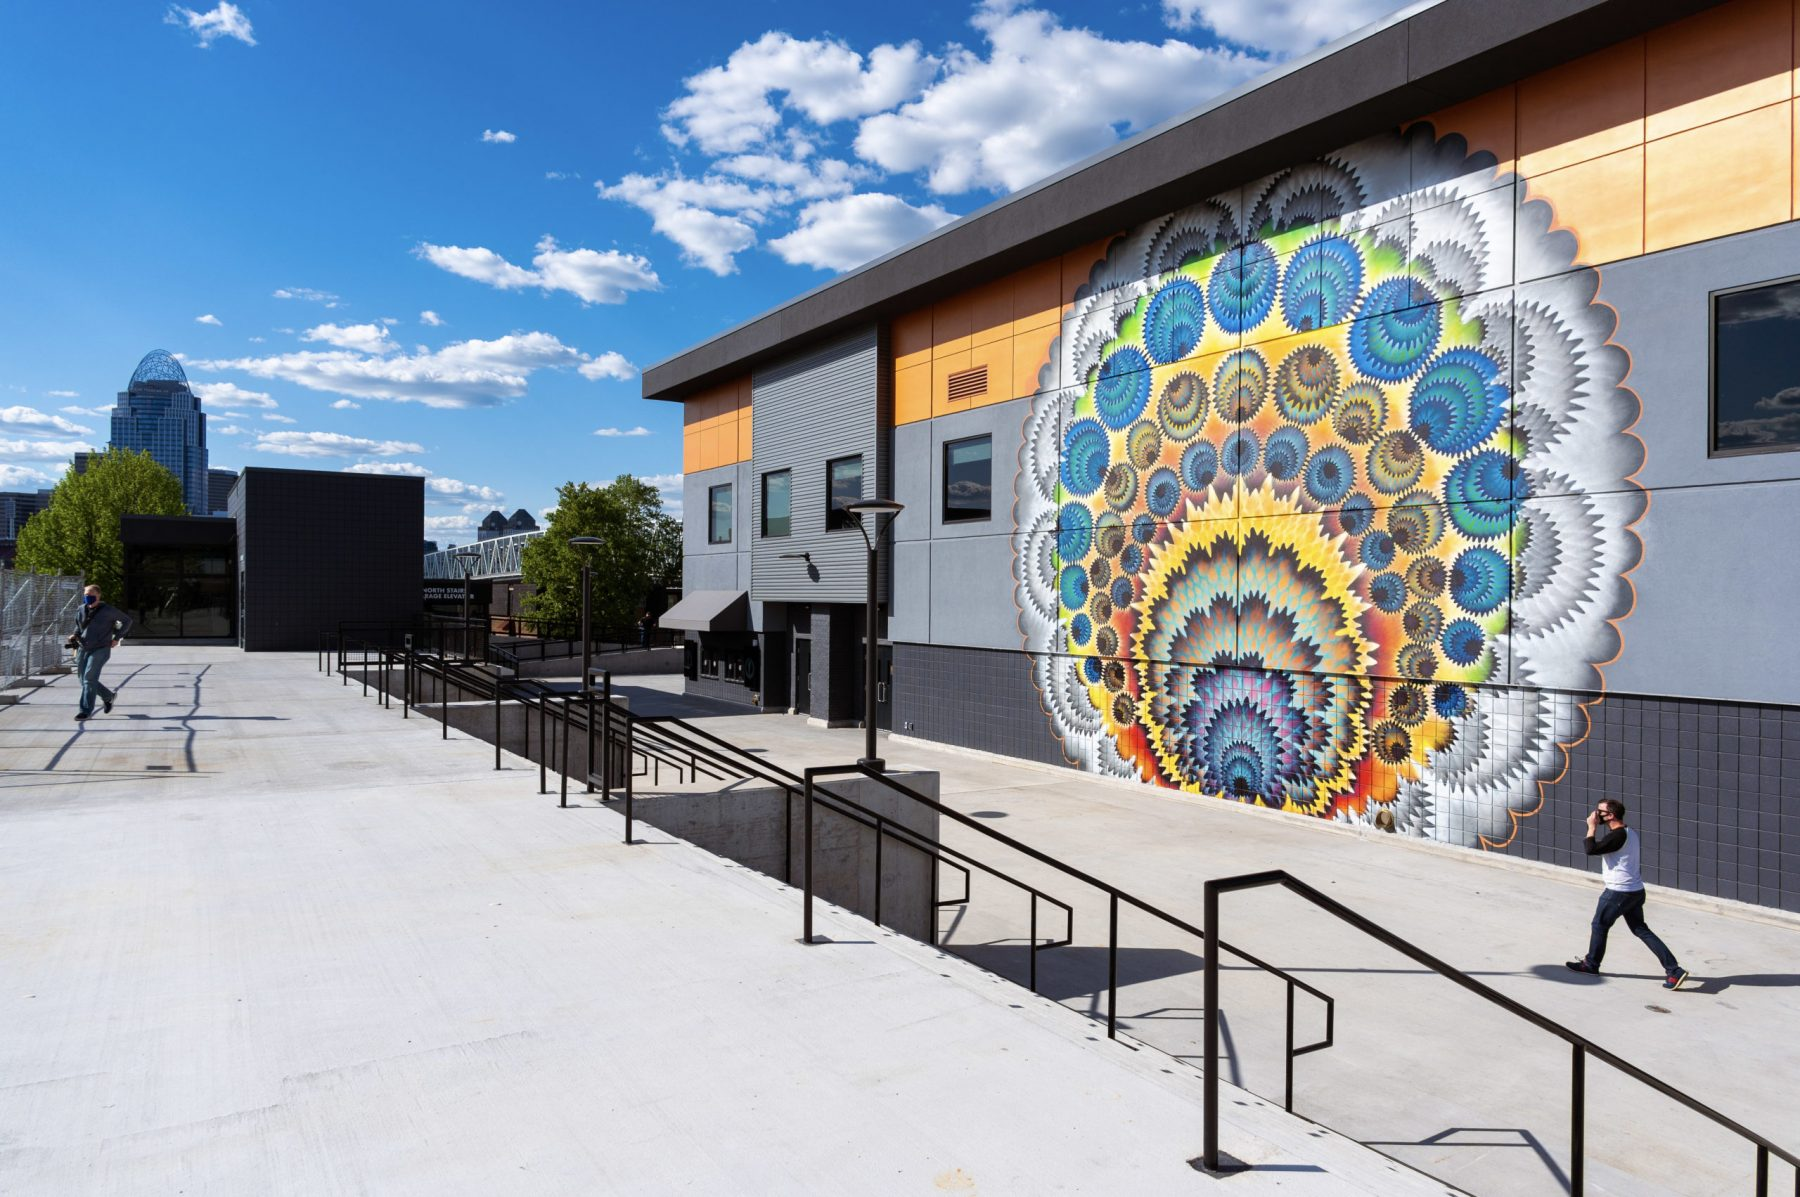 The west-facing side of the building features a brilliant mural. Photo by Phil Armstrong.